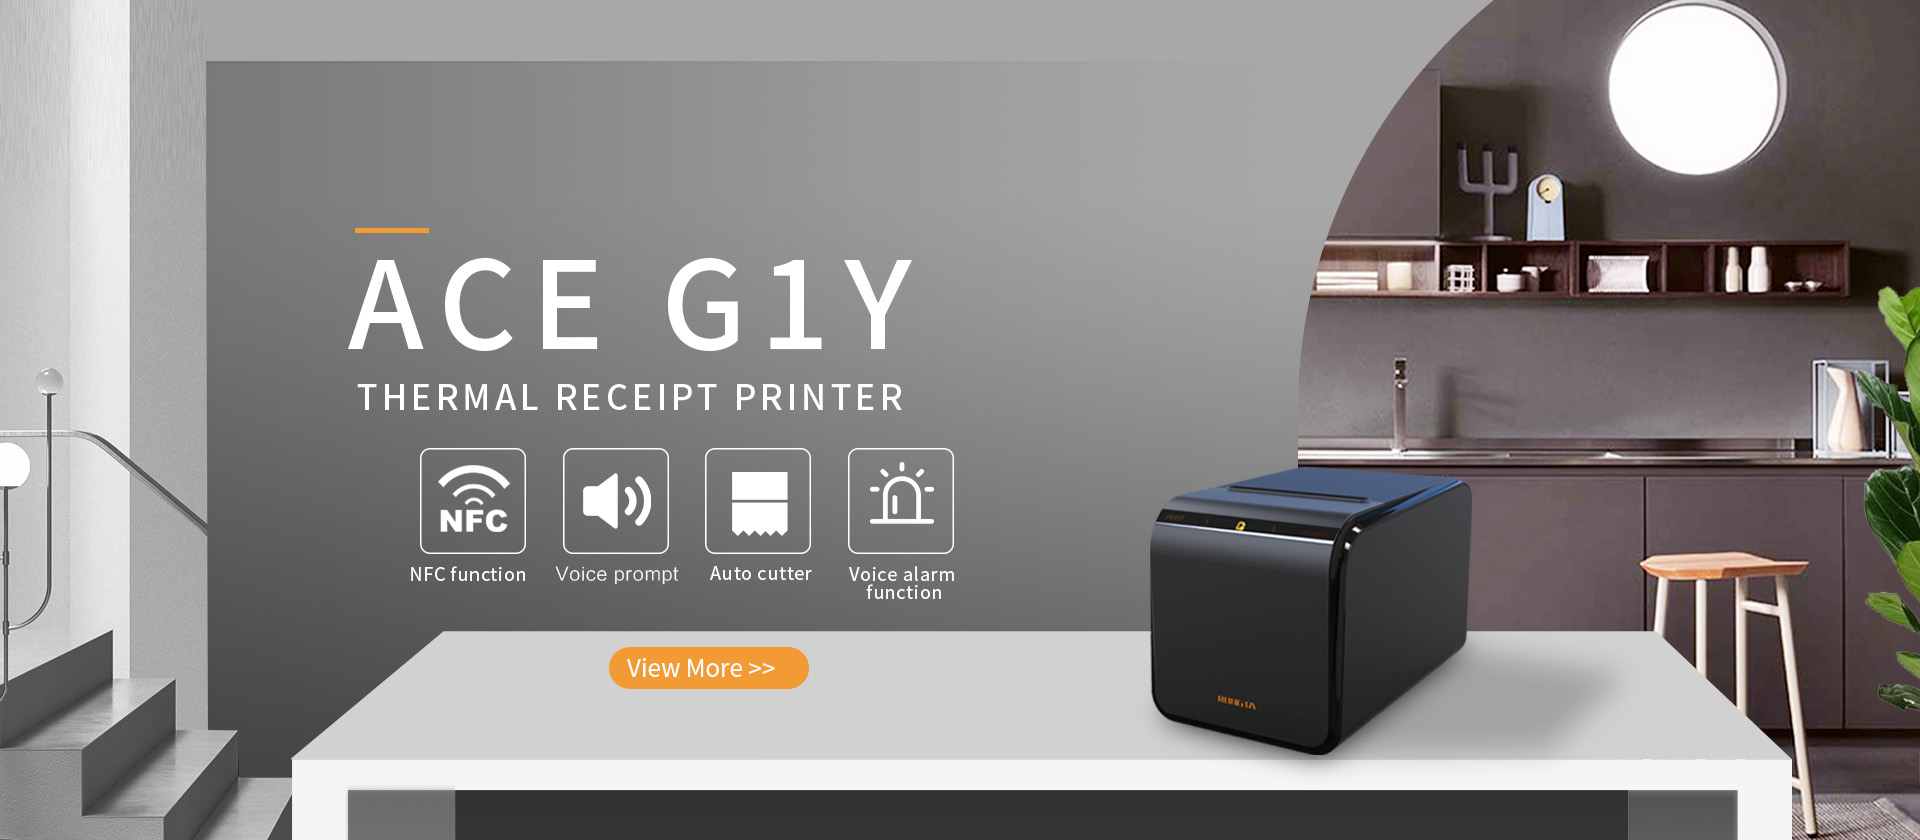 ACE G1Y Thermal Receipt Printer